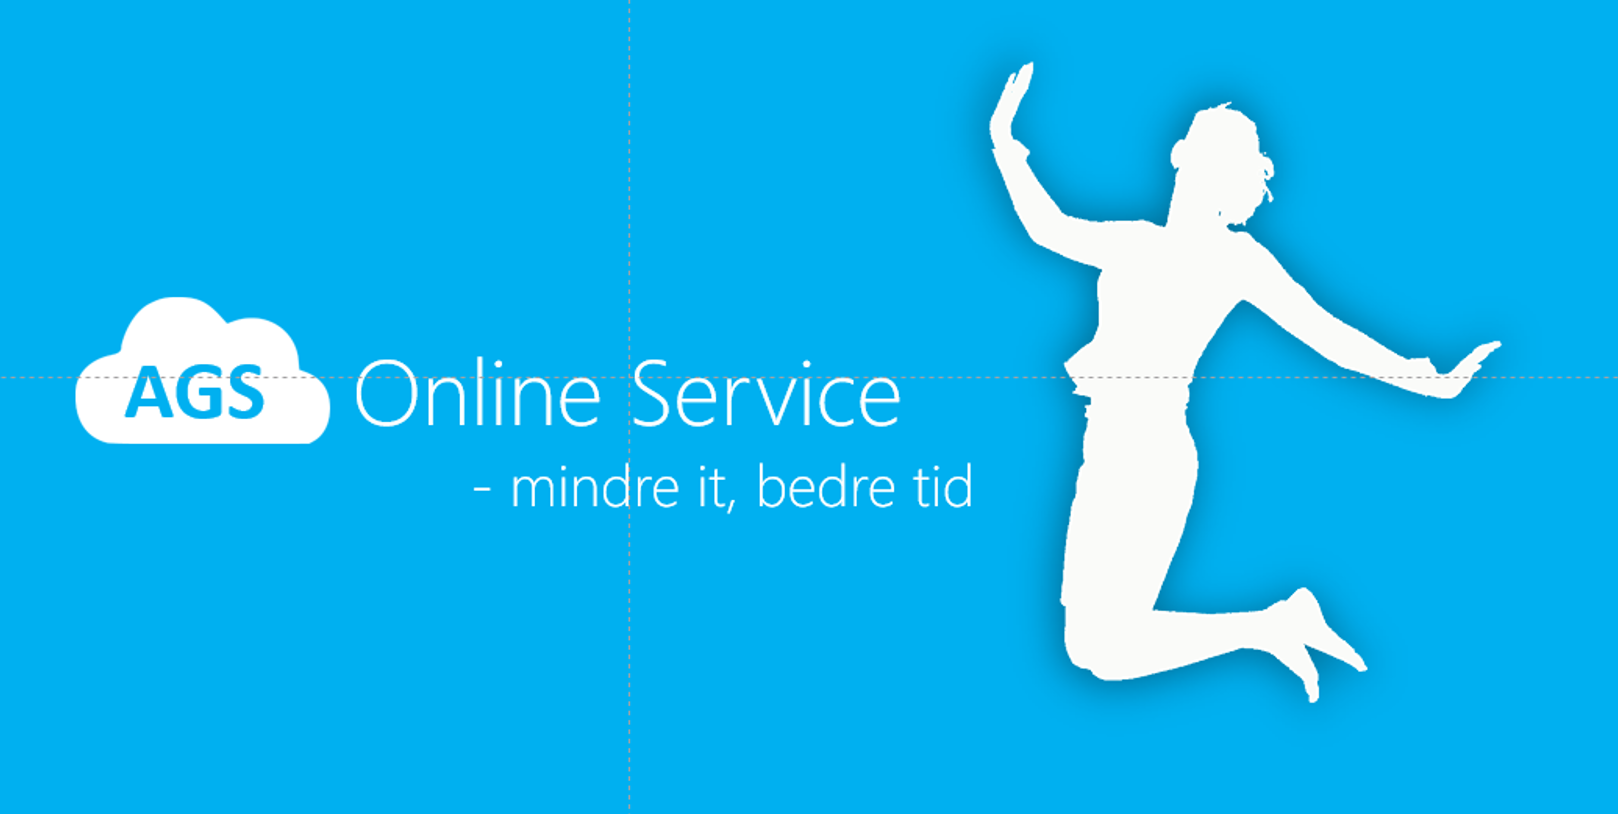 ags-online-service